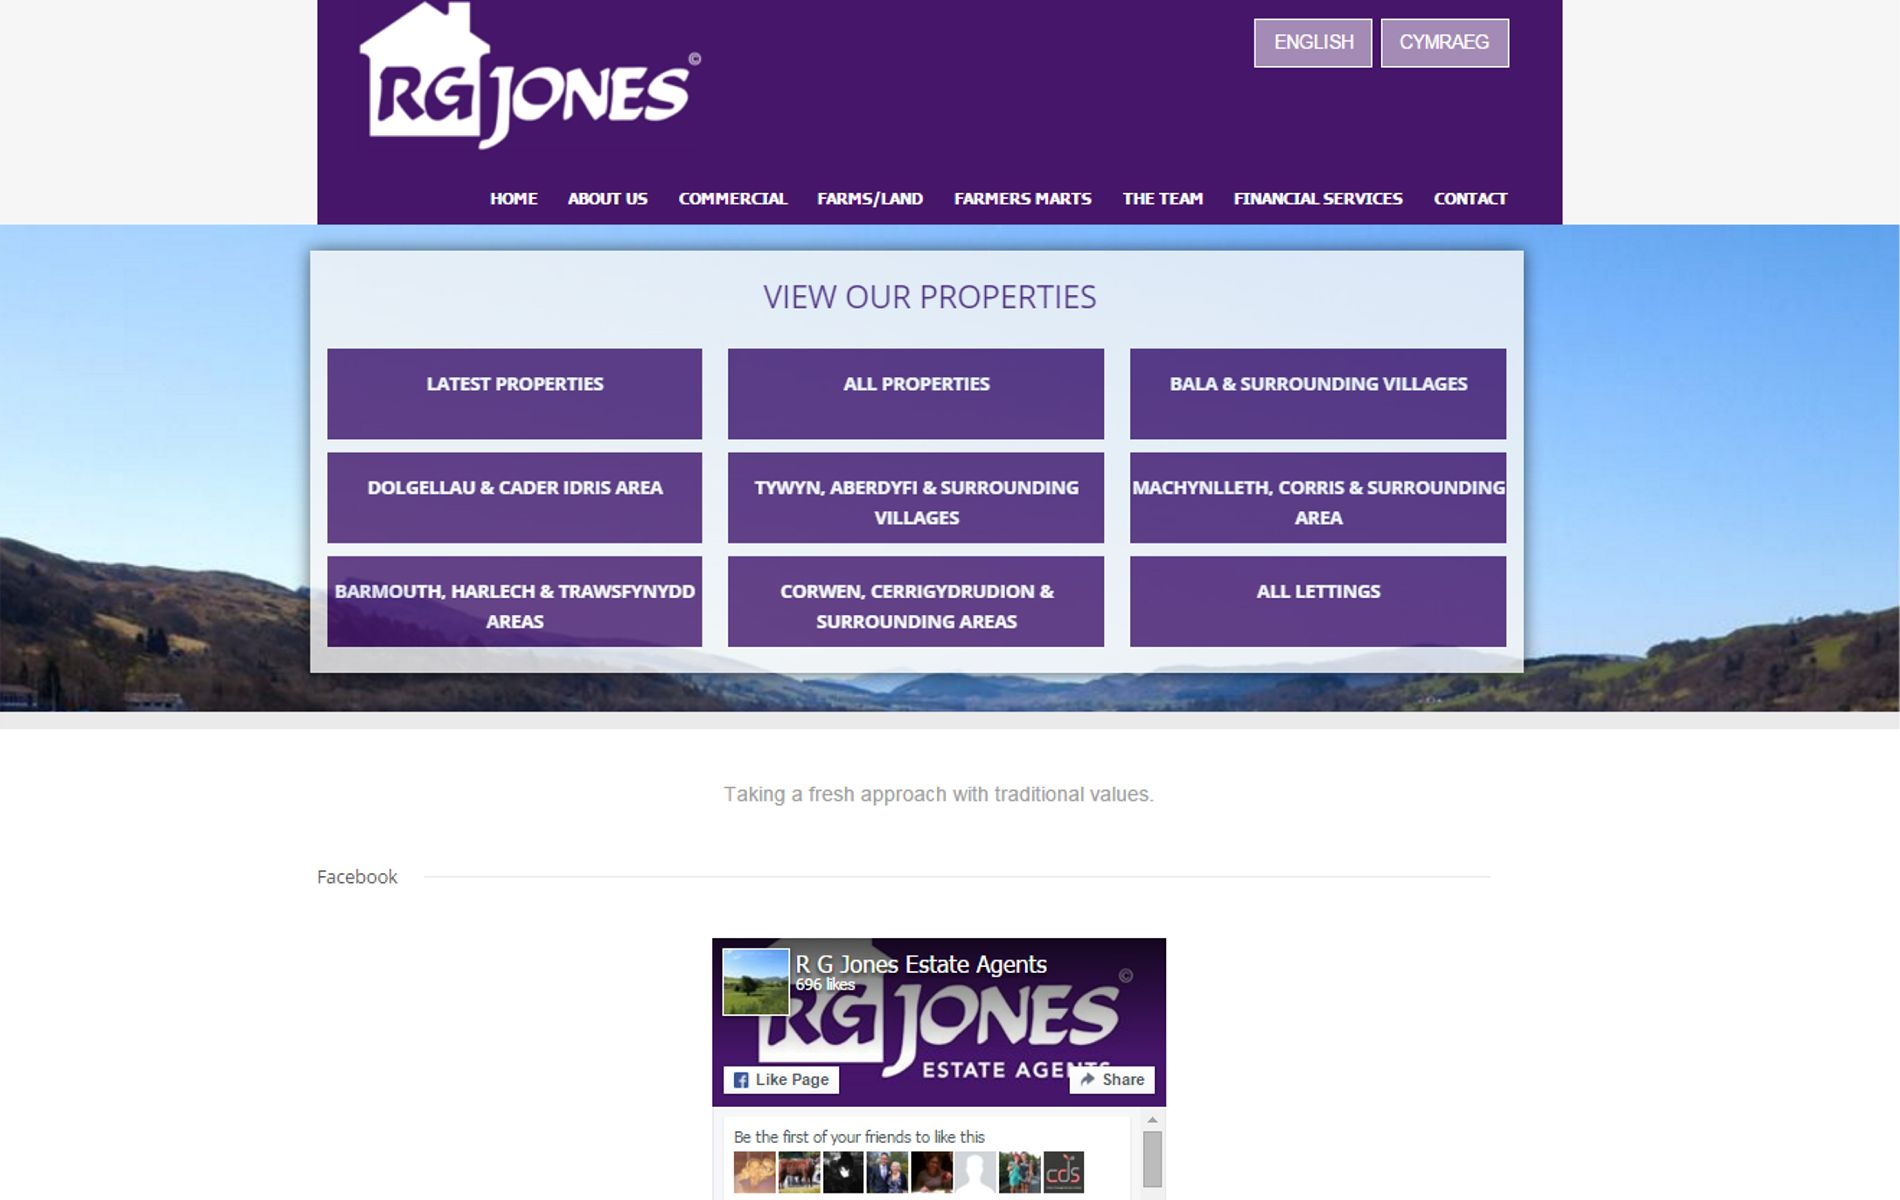 R G Jones website screenshot